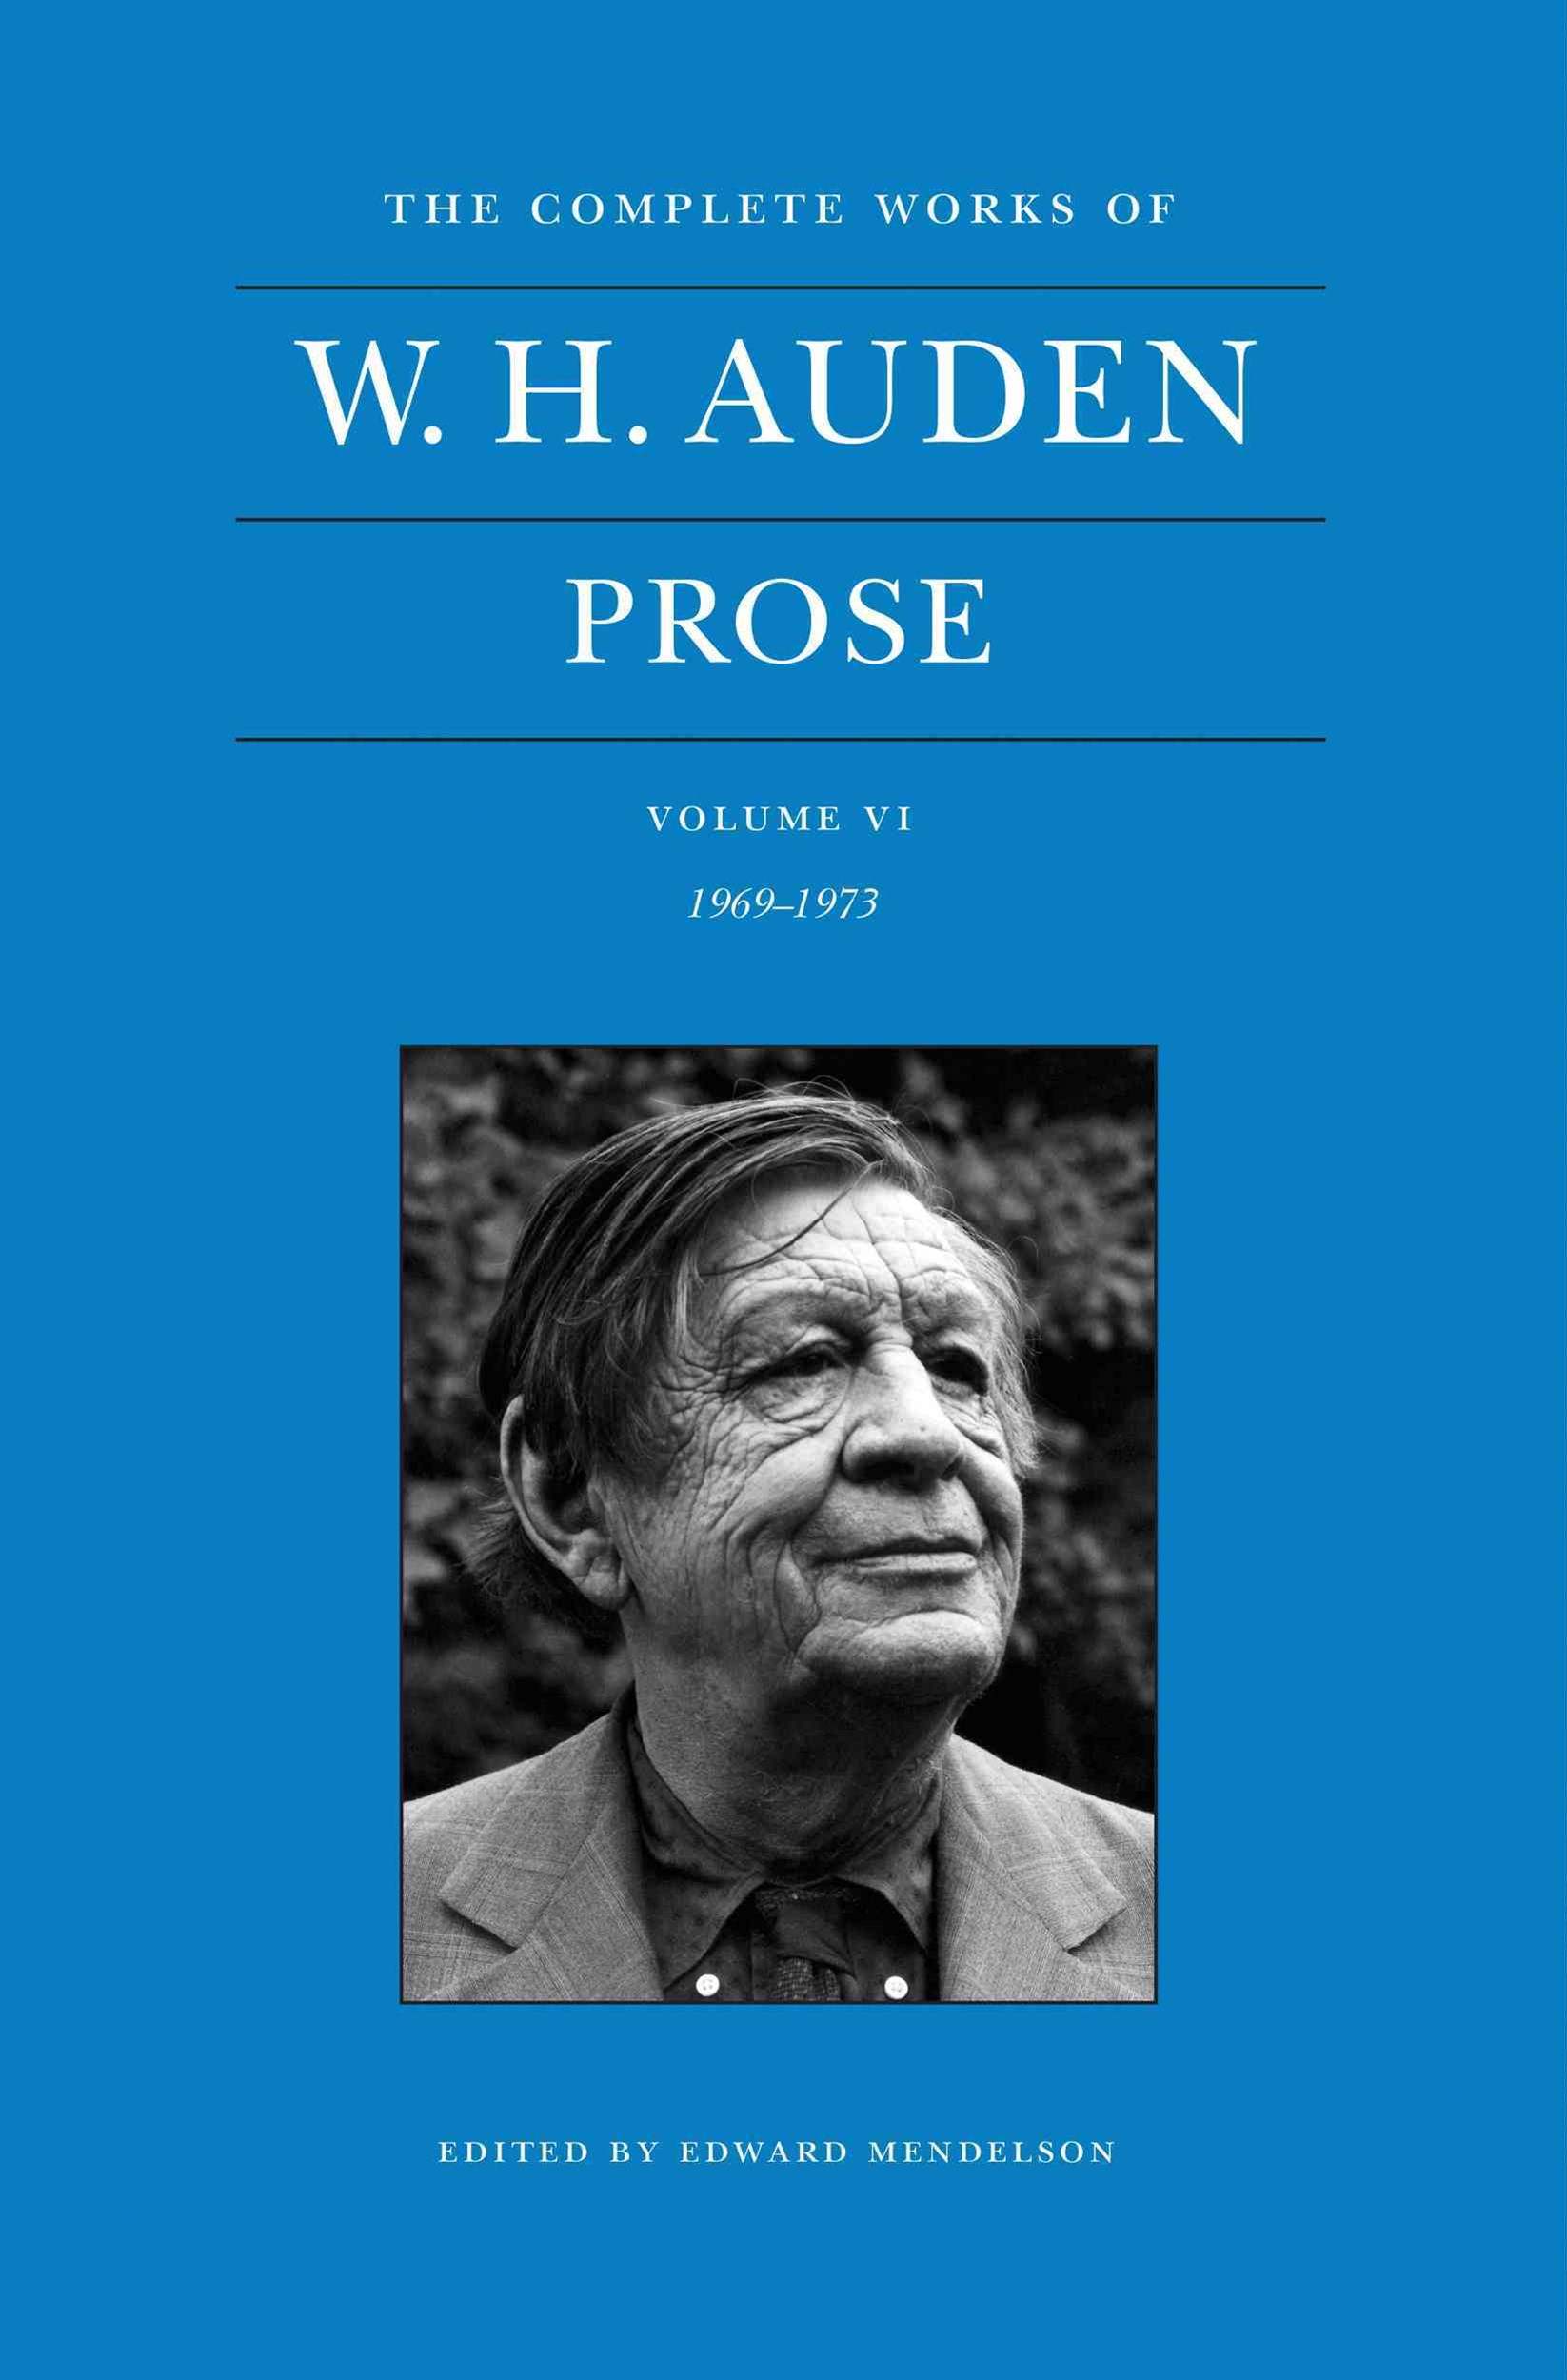 Complete Works of W. H Auden - Prose, 1969-1973